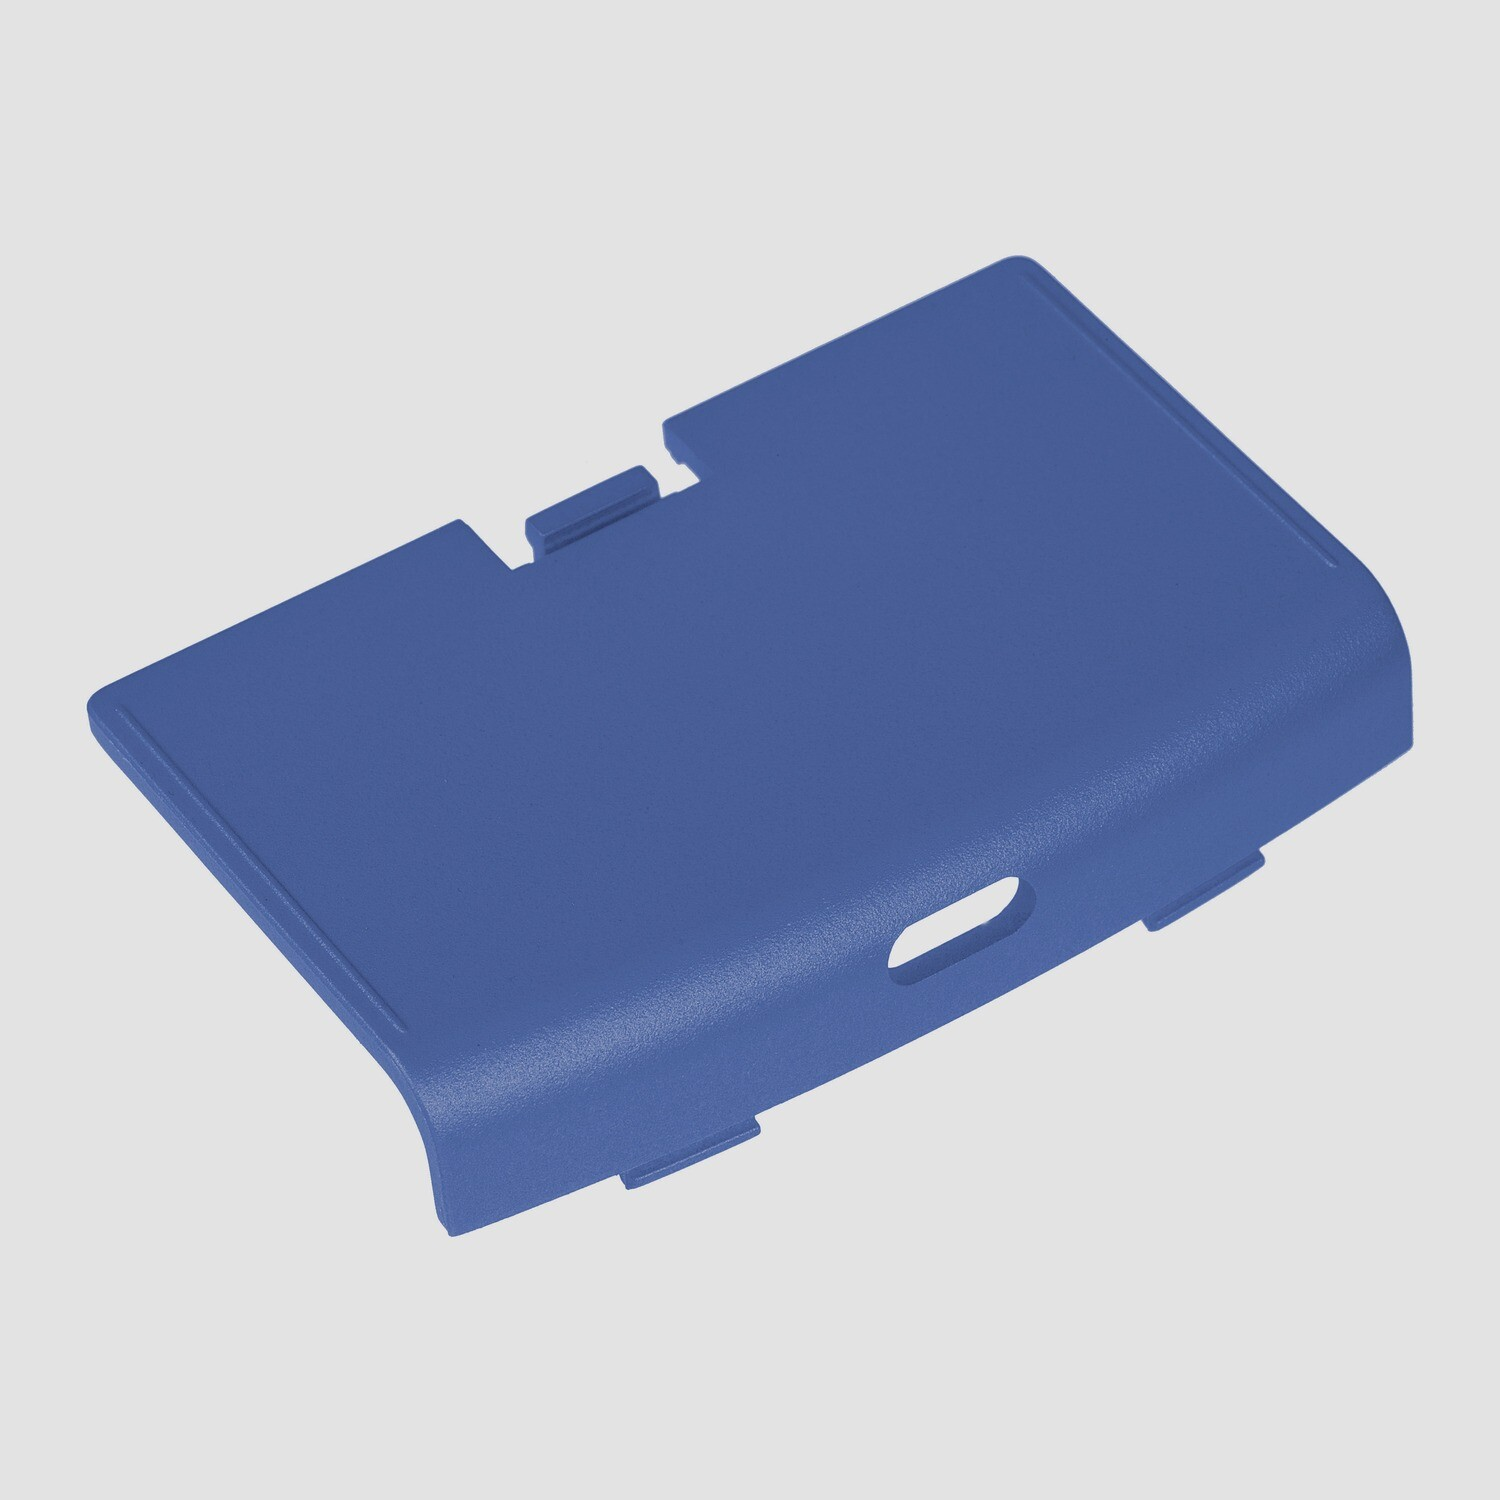 Game Boy Advance USB-C Battery Cover (Pearl Blue)